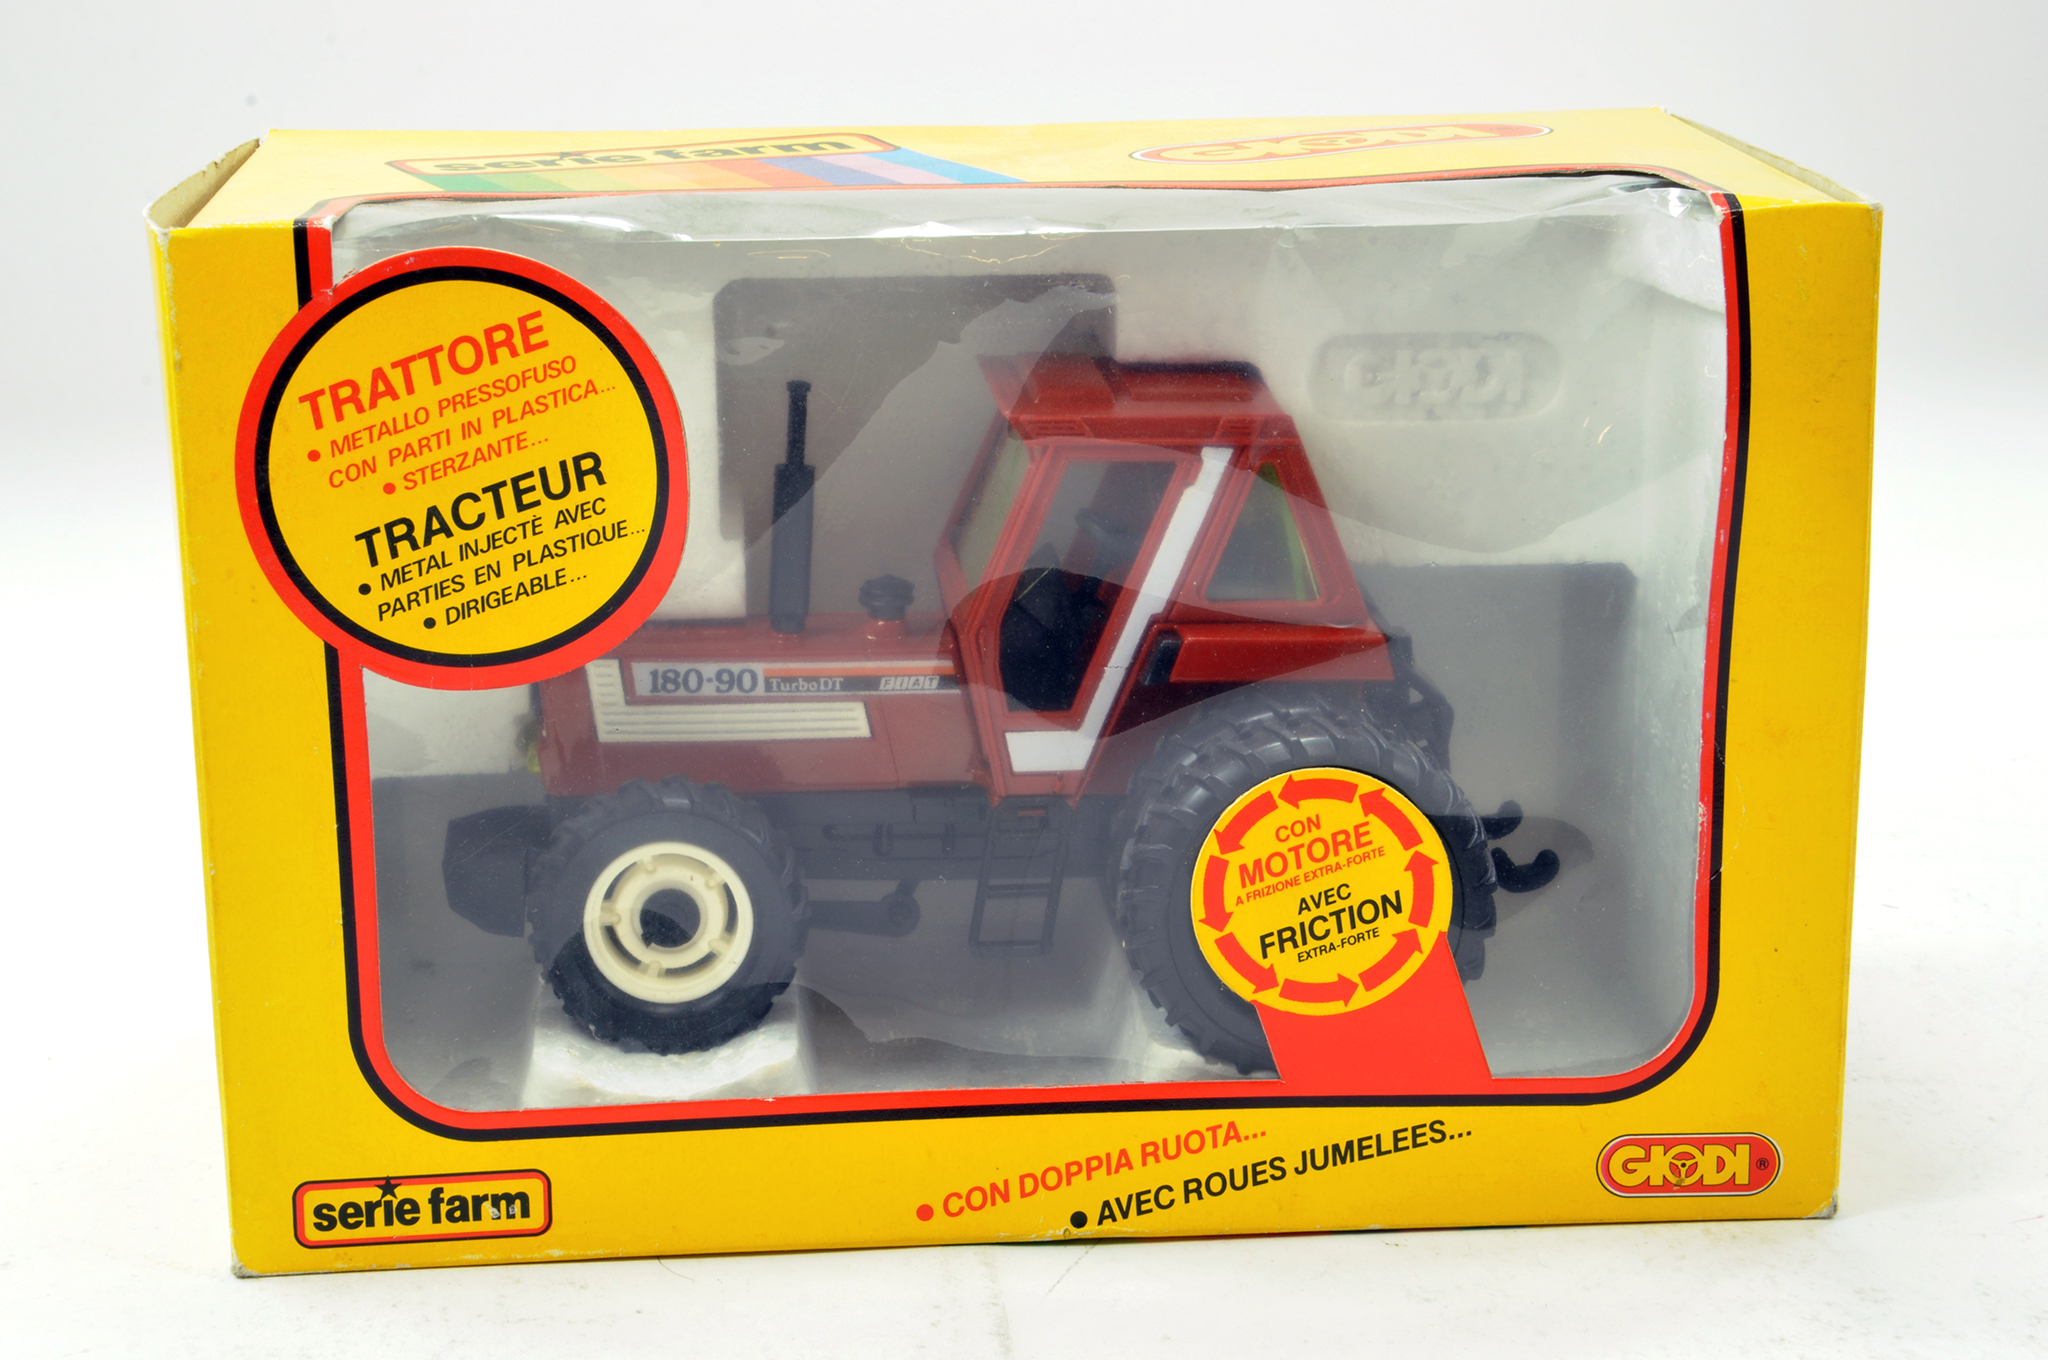 Lot 297 - Giodi No. 73035 Fiat 180-90 DT Tractor. Superb example is E to NM in Box.